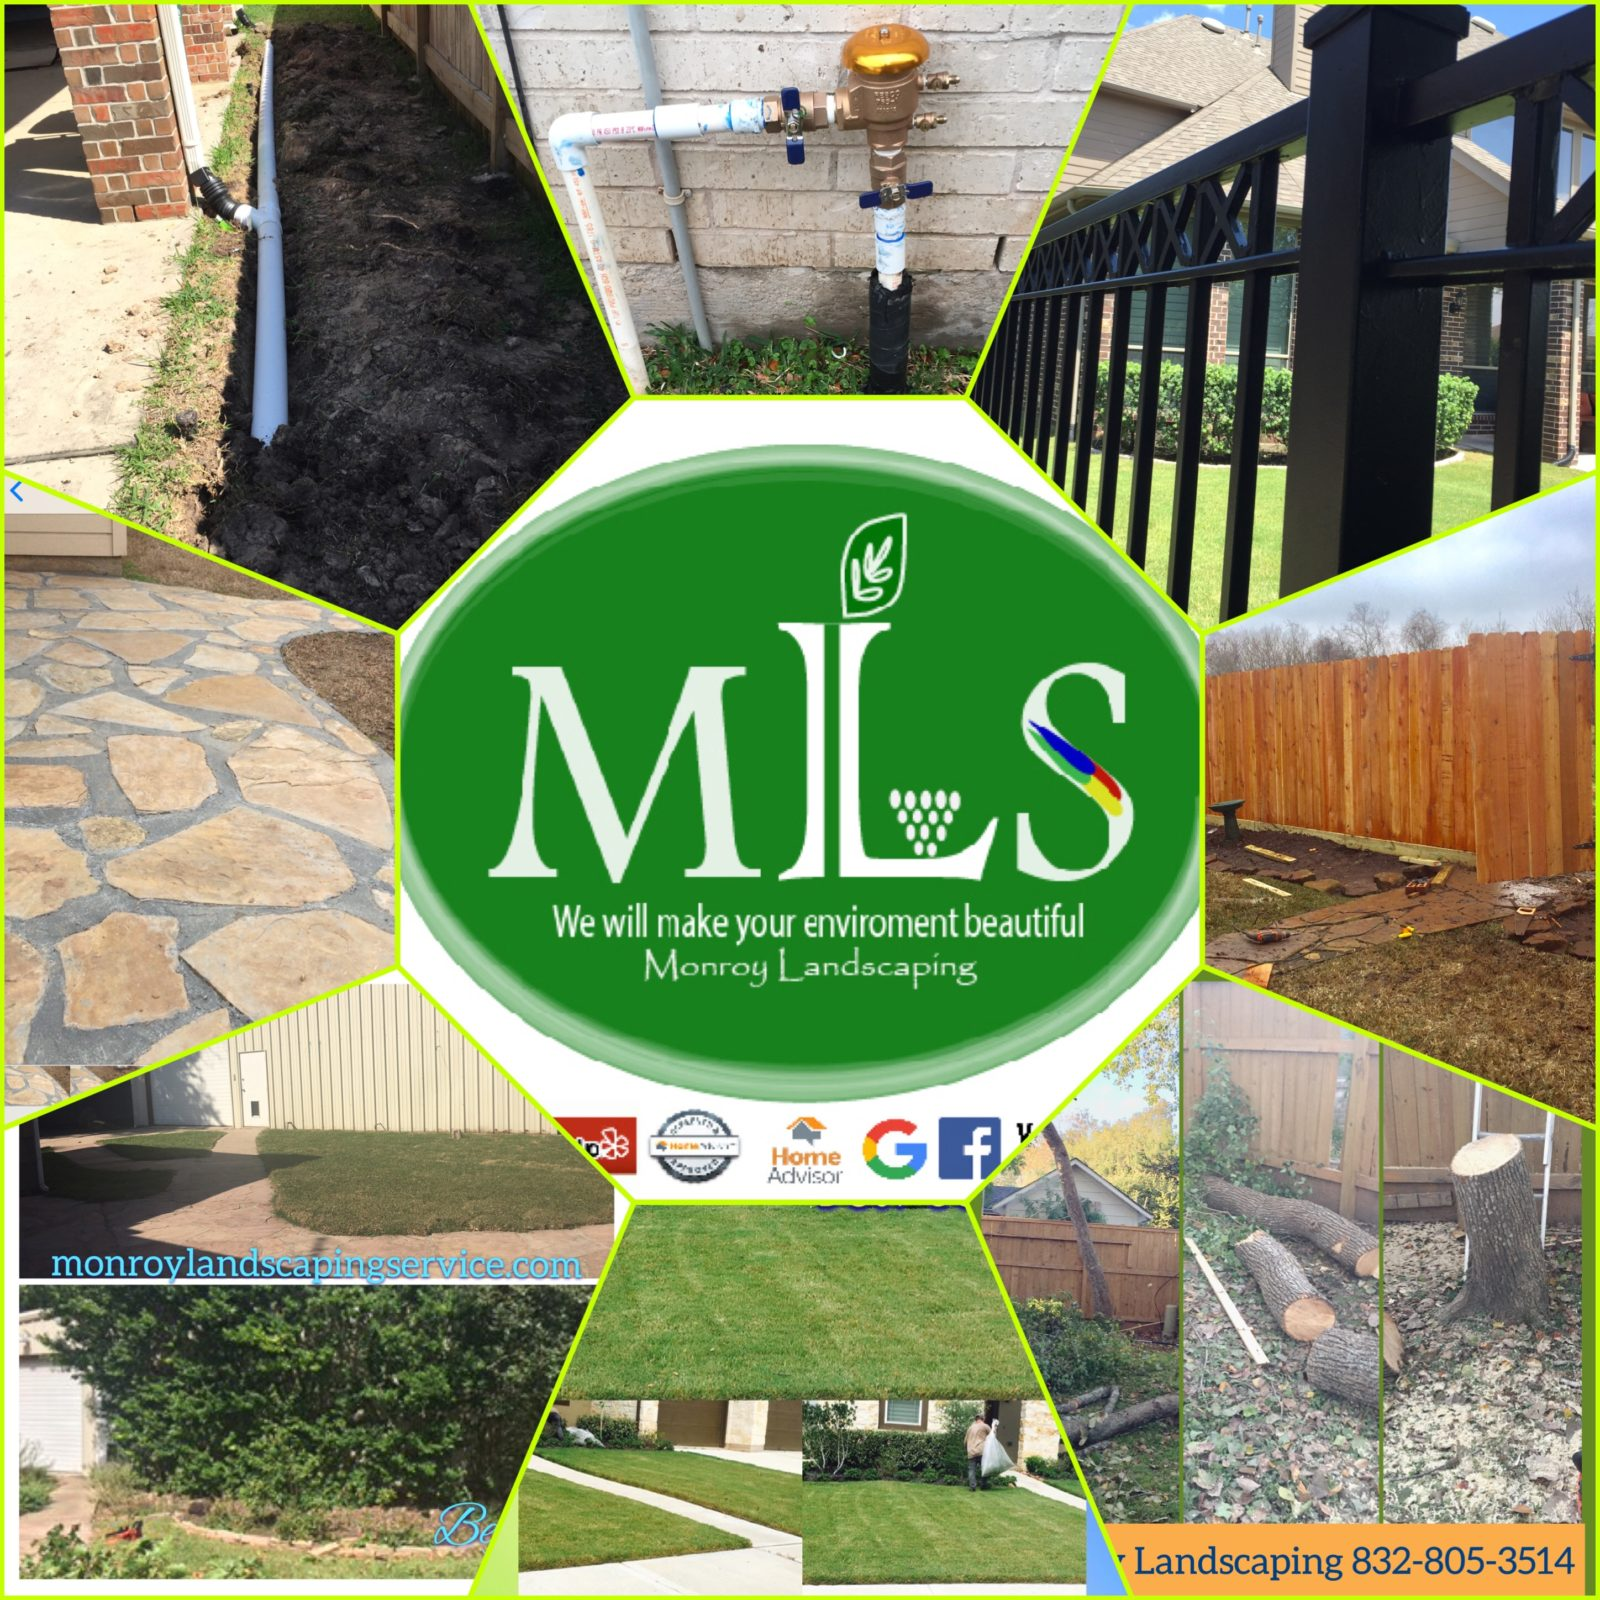 wood fence repair, sidewalk, tree service, Sprinkler valve replacement, mowing care, interior exterior painting, pressure washer